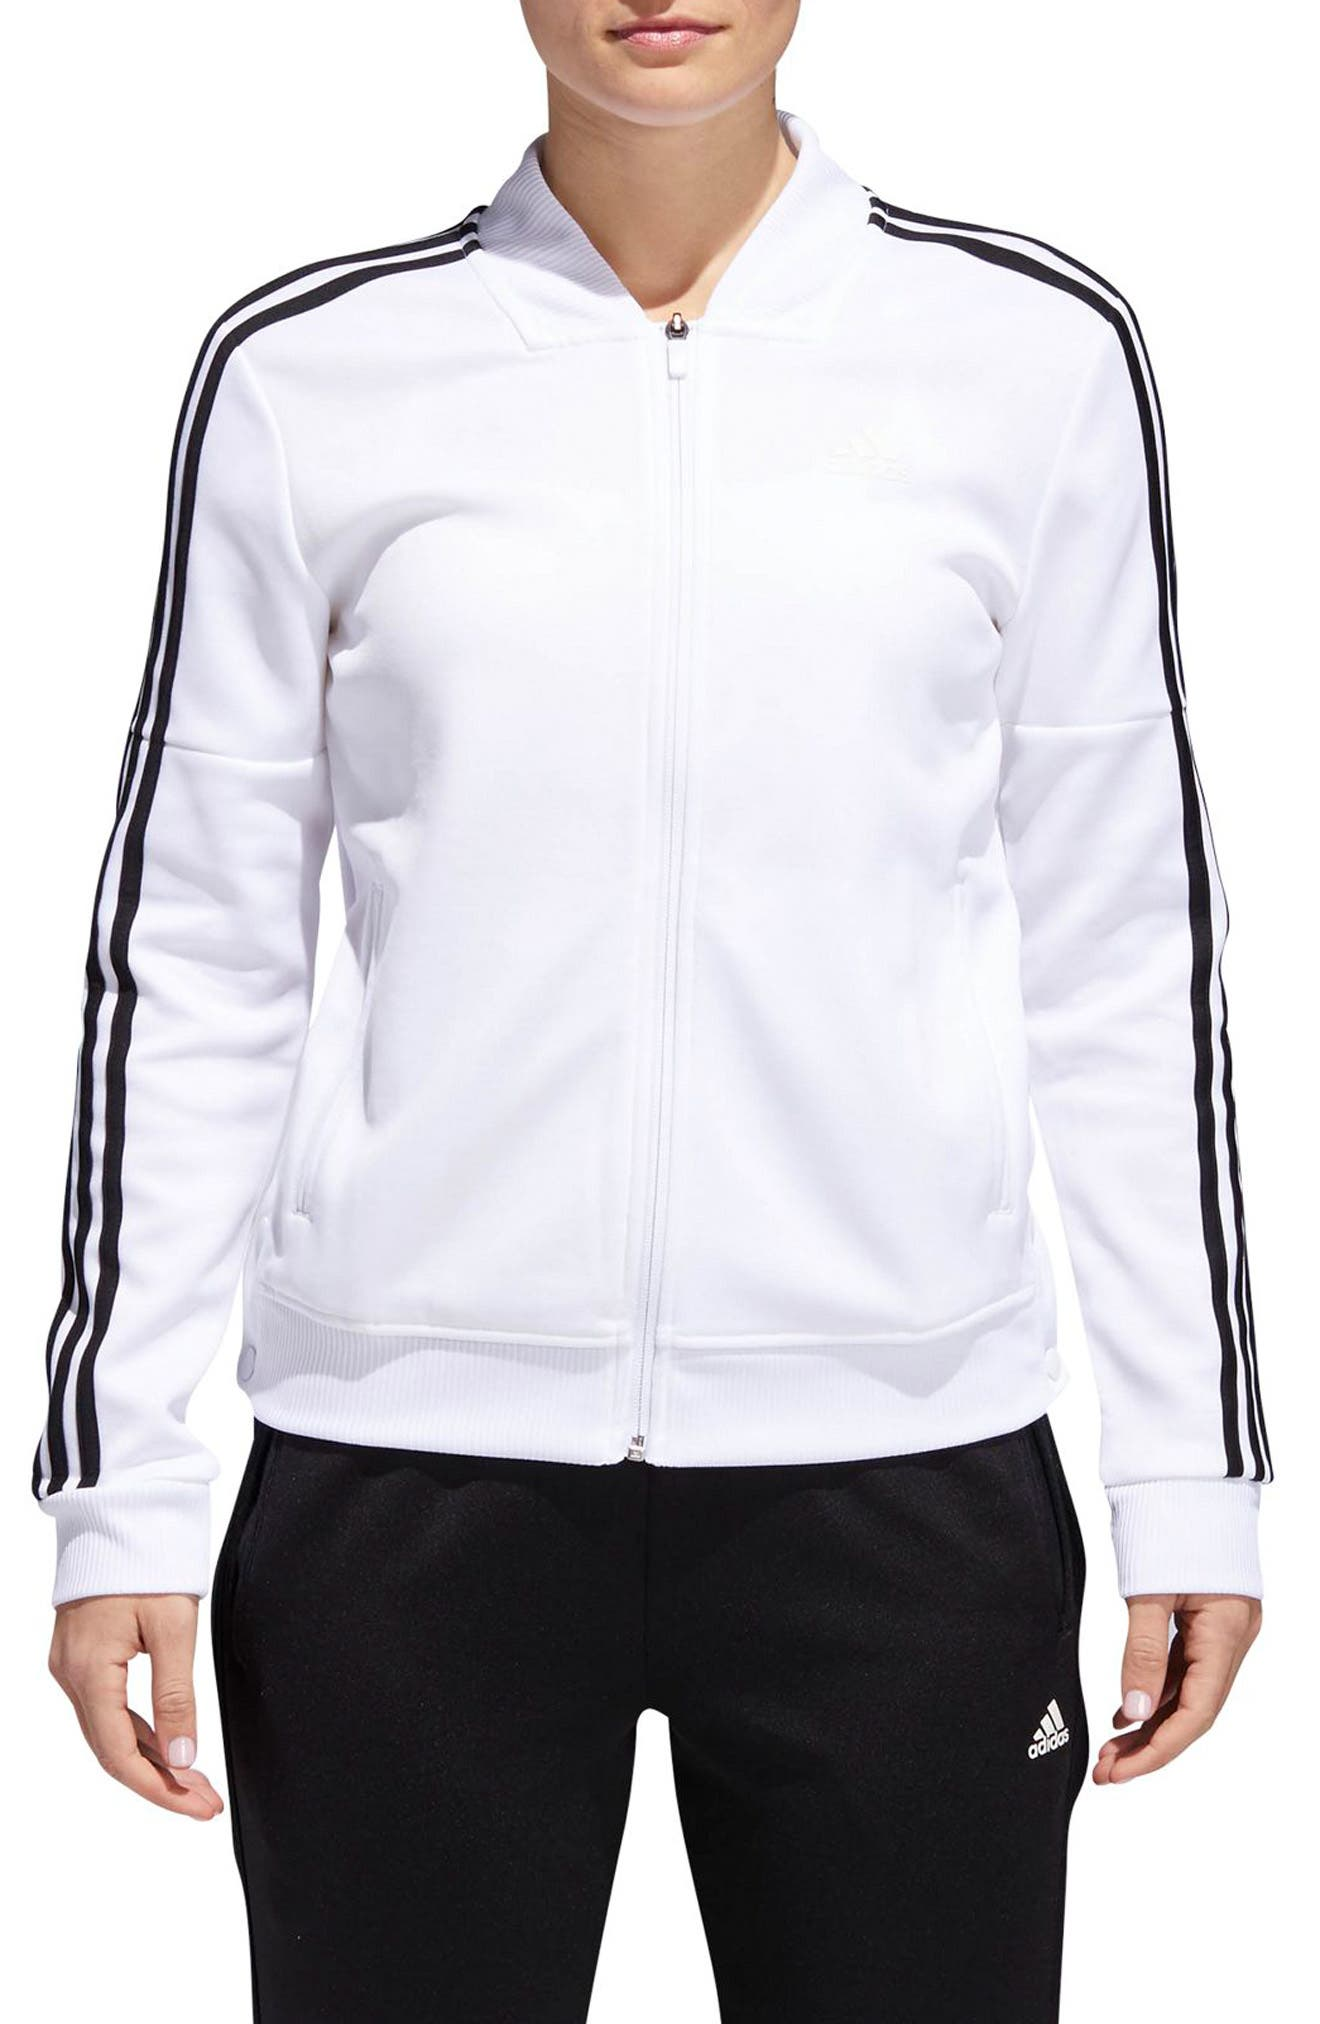 Tricot Snap It Track Jacket,                         Main,                         color, 100